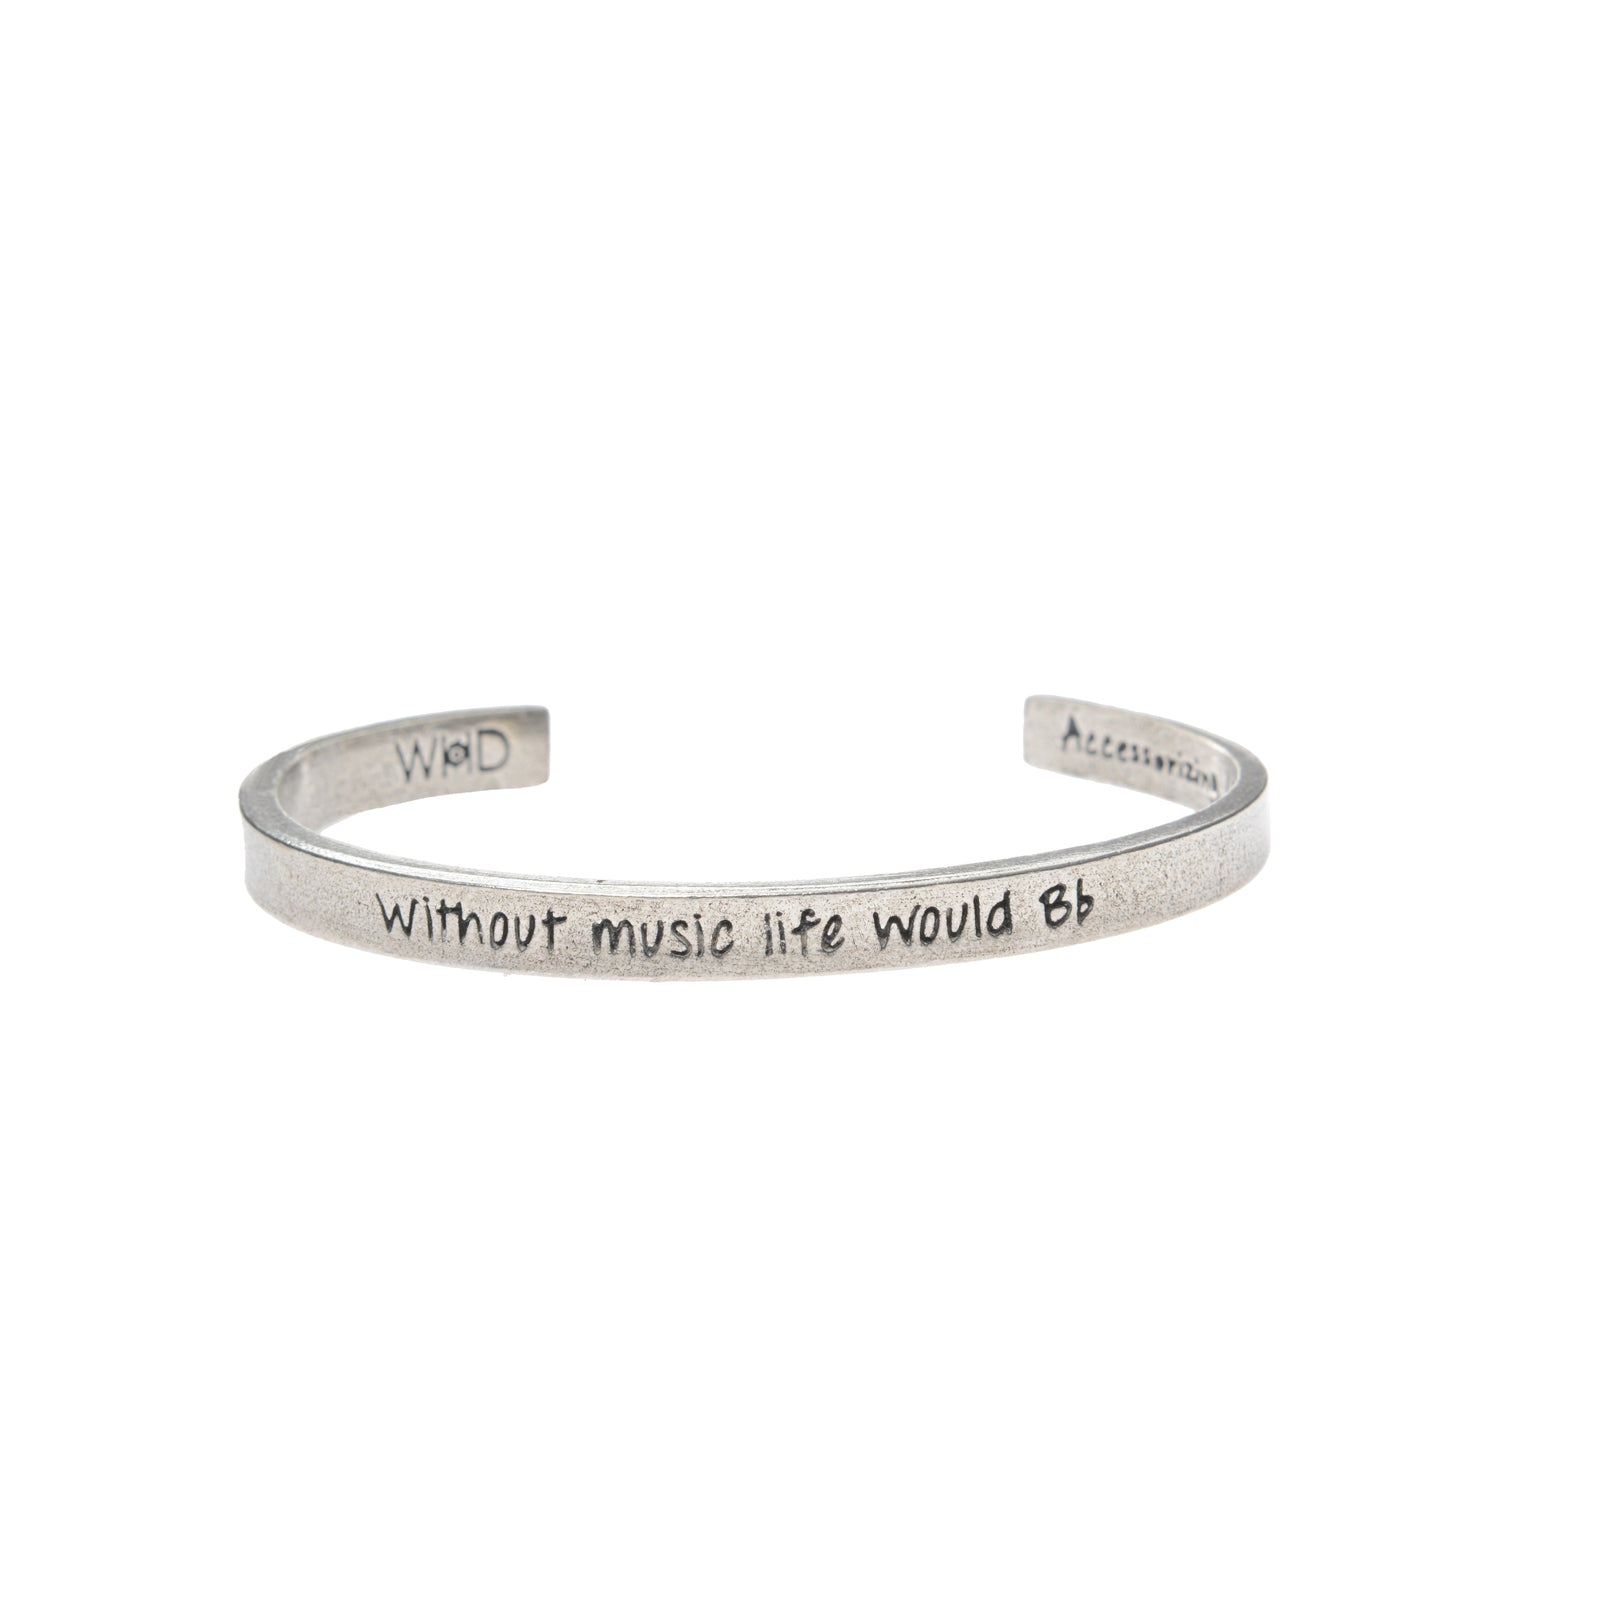 Without Music Life Quotable Cuff